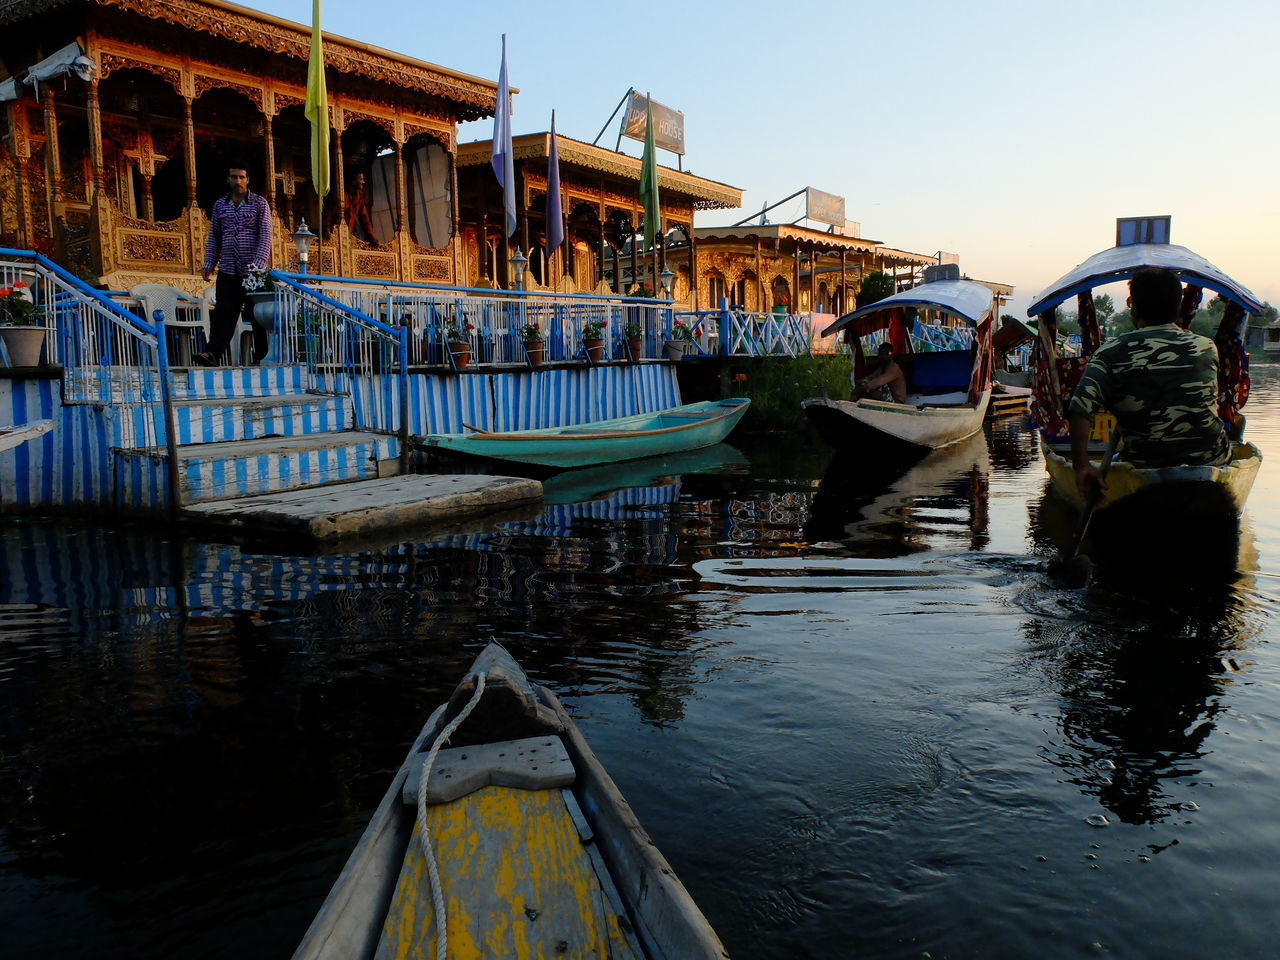 Architecture Boat Building Exterior Built Structure Canal Day Gondola - Traditional Boat Large Group Of People Lifestyles Mode Of Transport Moored Nautical Vessel Outdoors Pedal Boat People Reflection Sky Srinagar Kashmir Transportation Tree Water